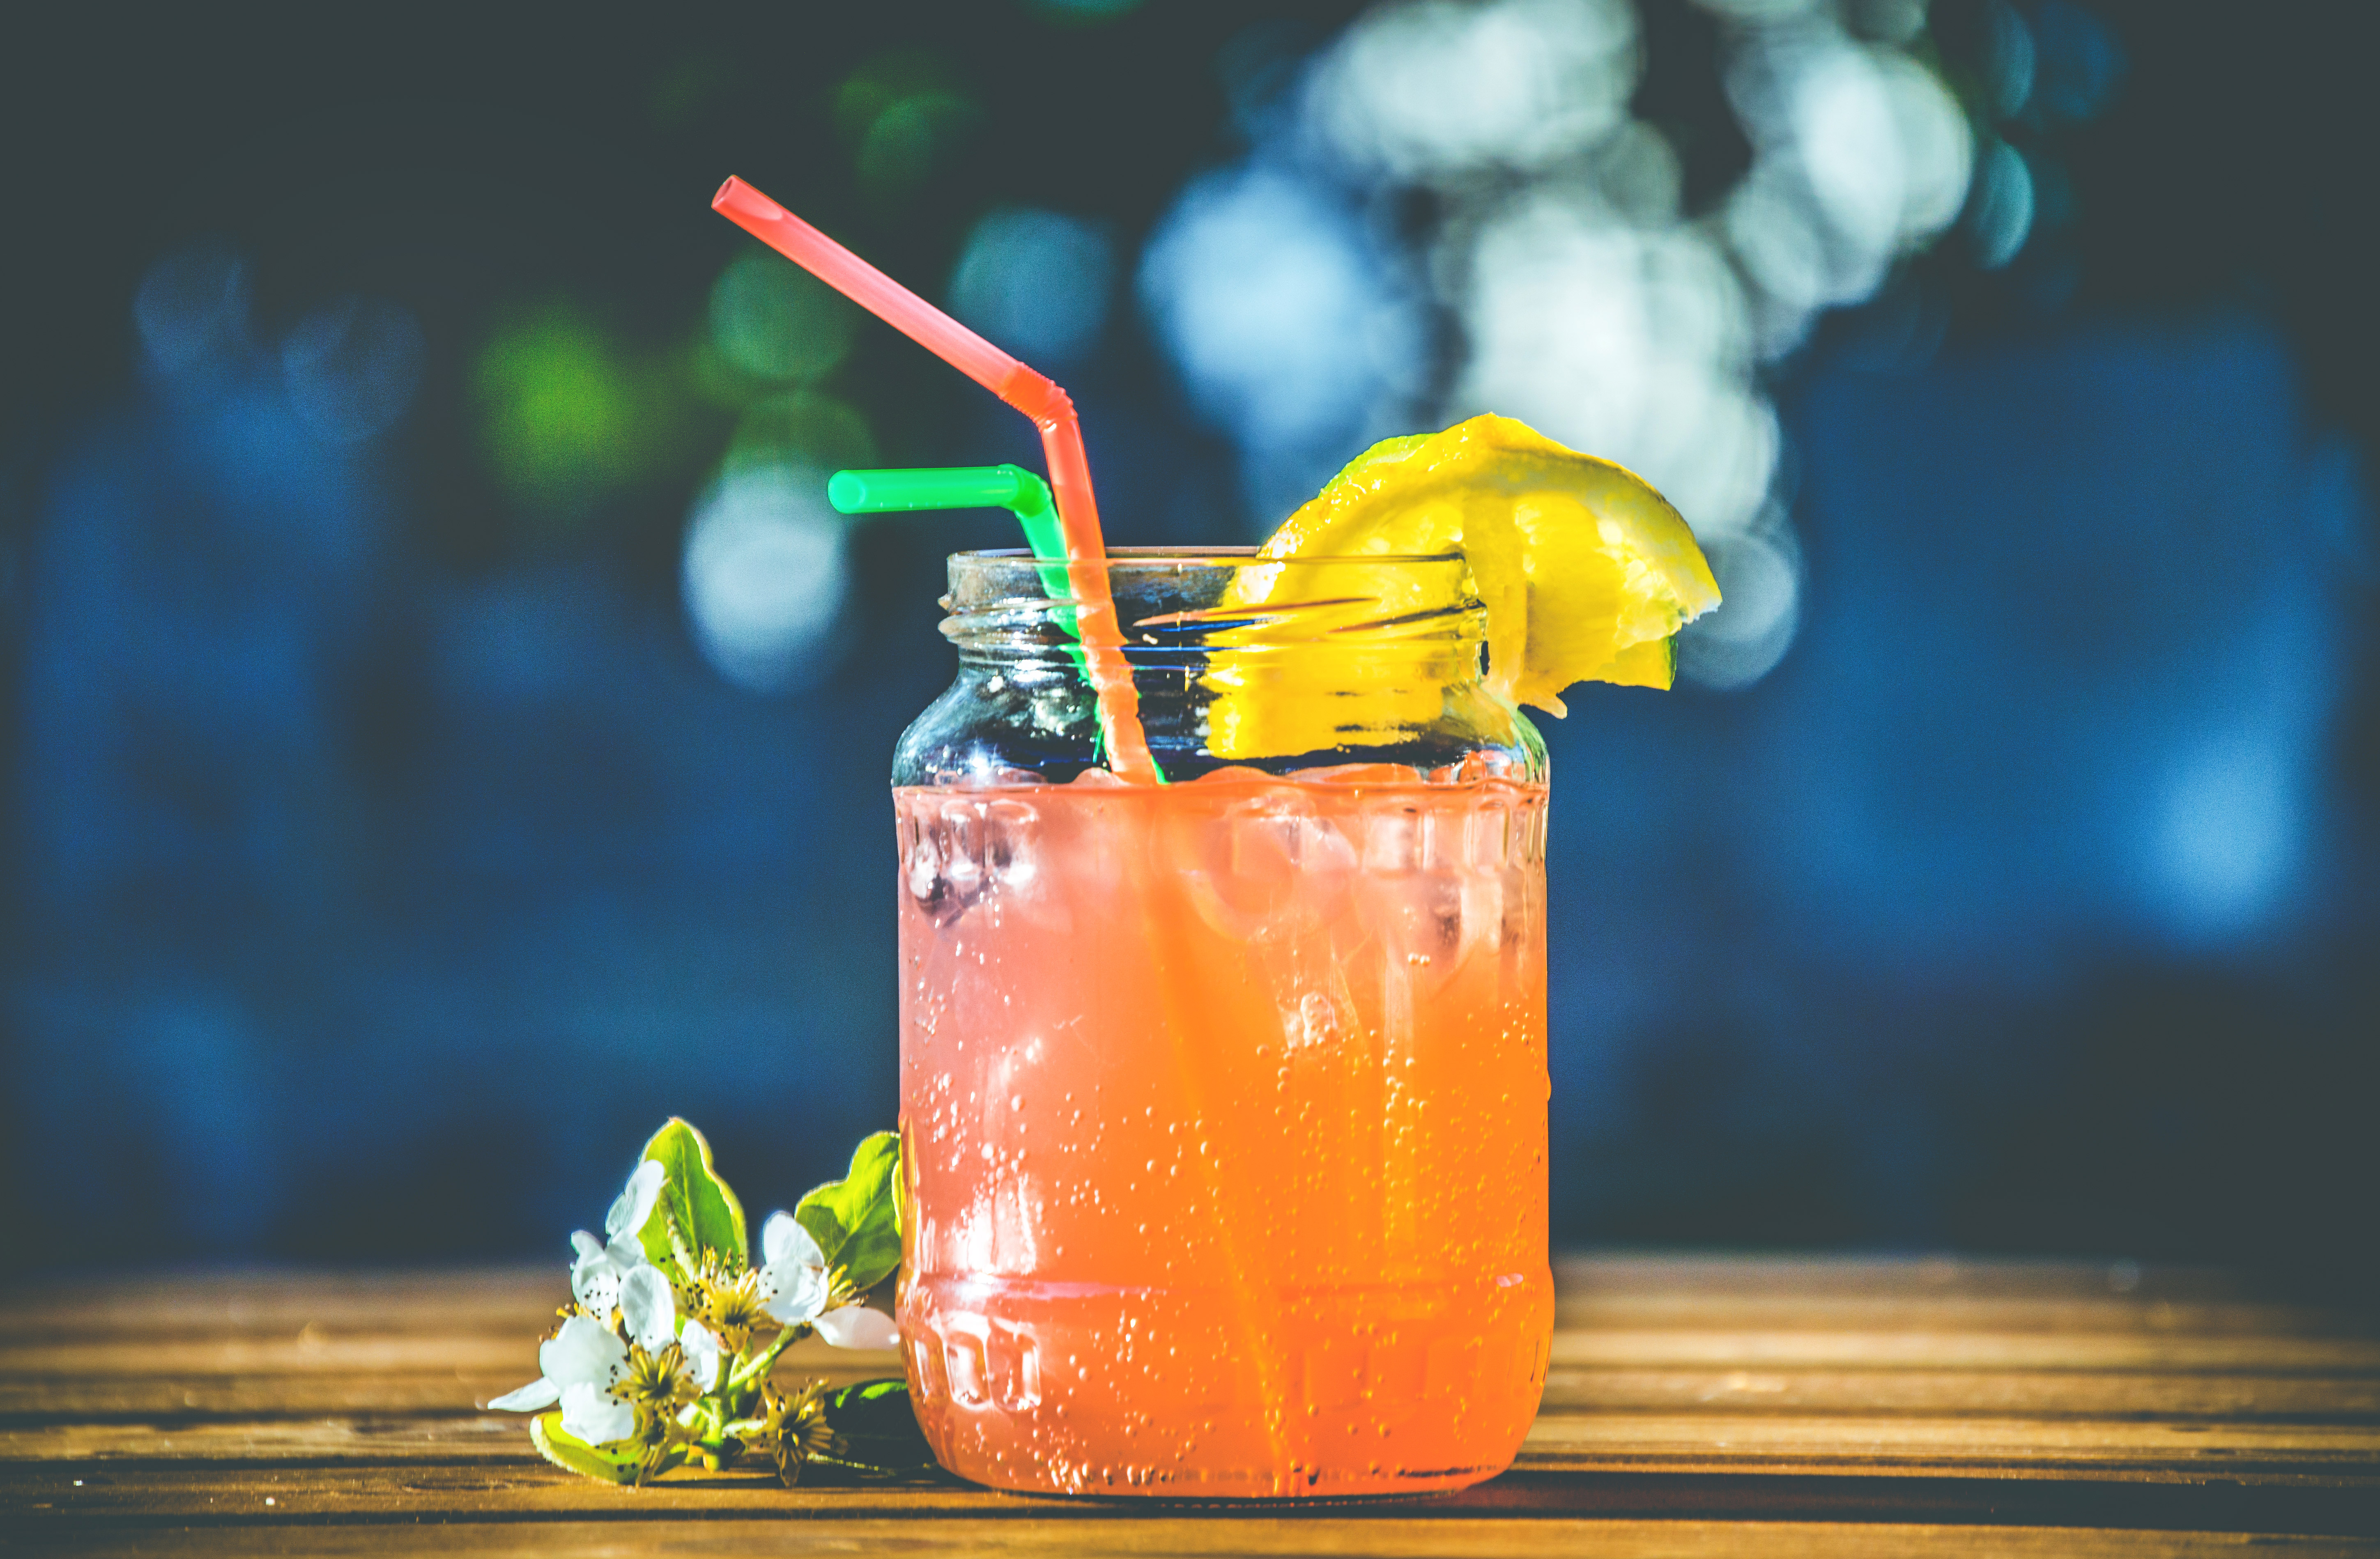 Summer cocktail recipes you'll love